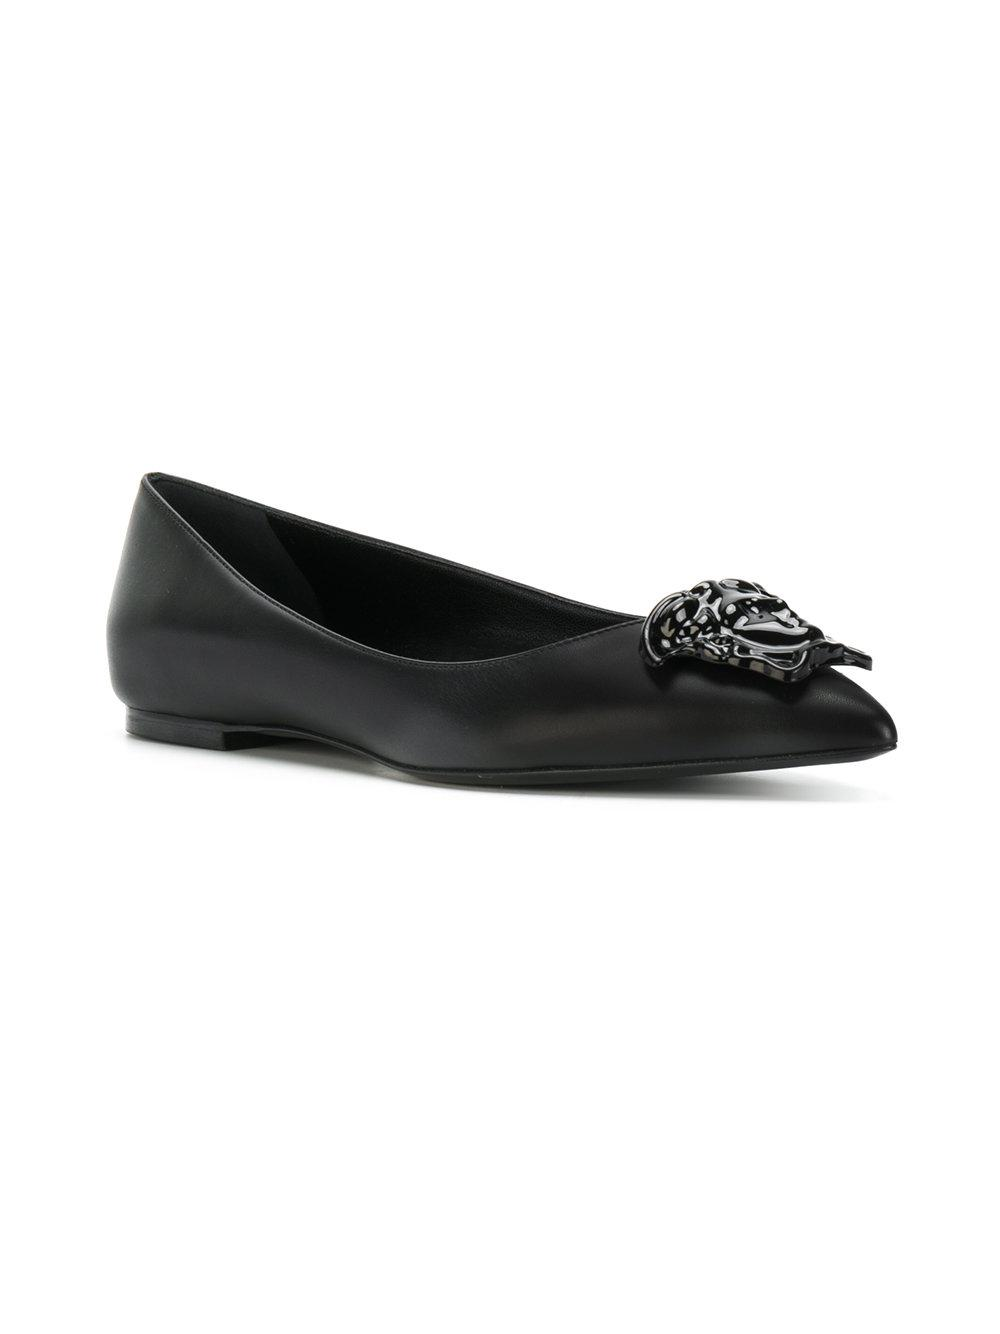 981ac9d0029a Lyst - Versace Medusa Palazzo Ballerina Shoes in Black